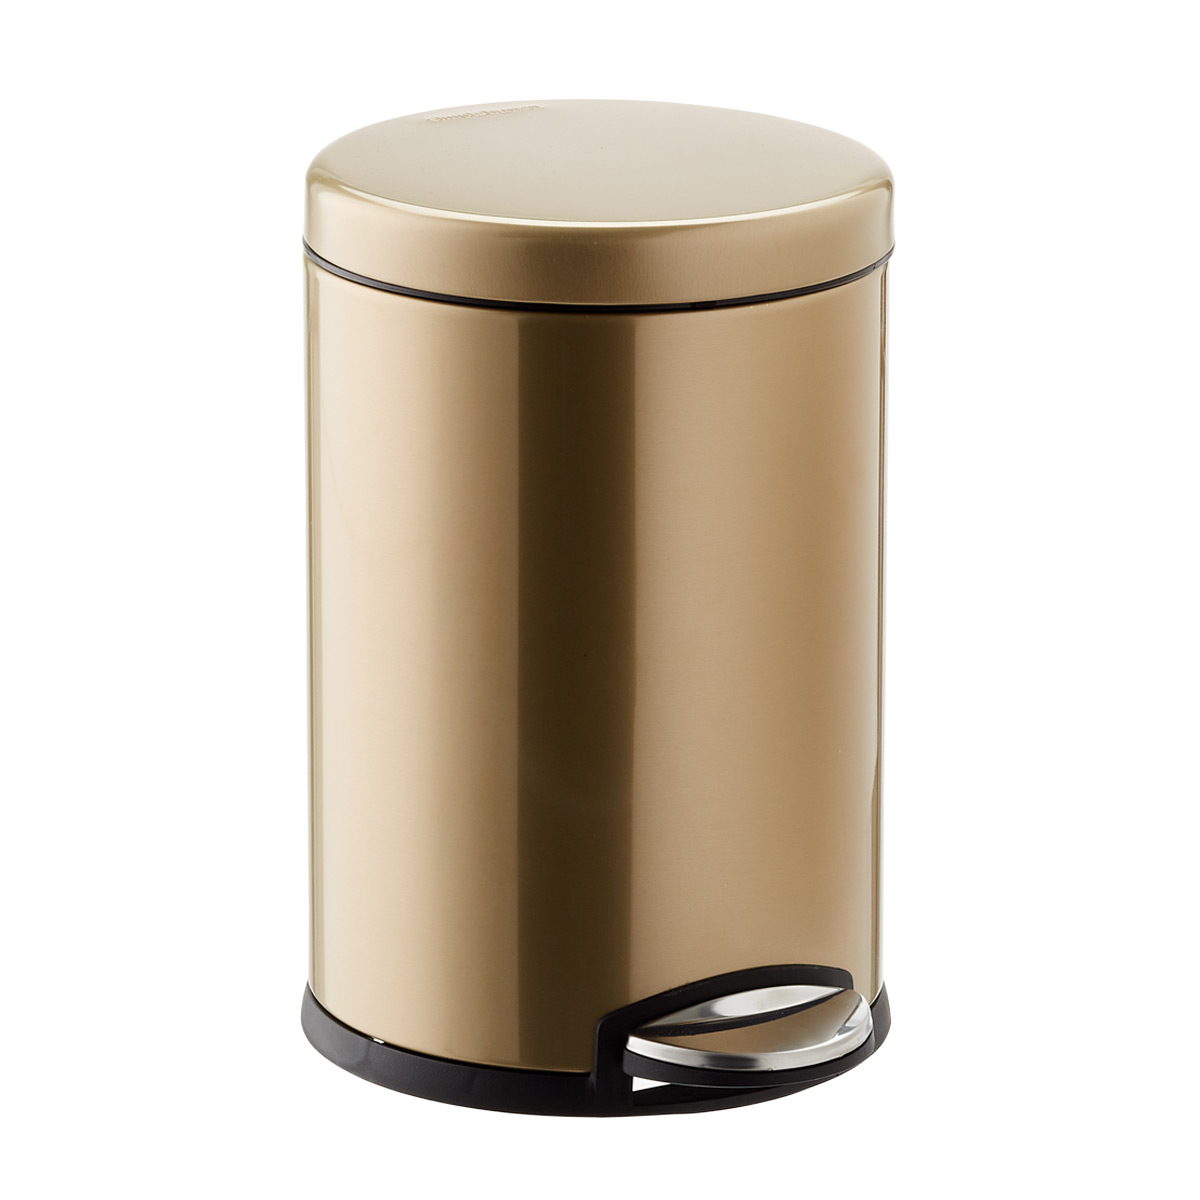 simplehuman Brass 1.2 gal. Round Step Trash Can